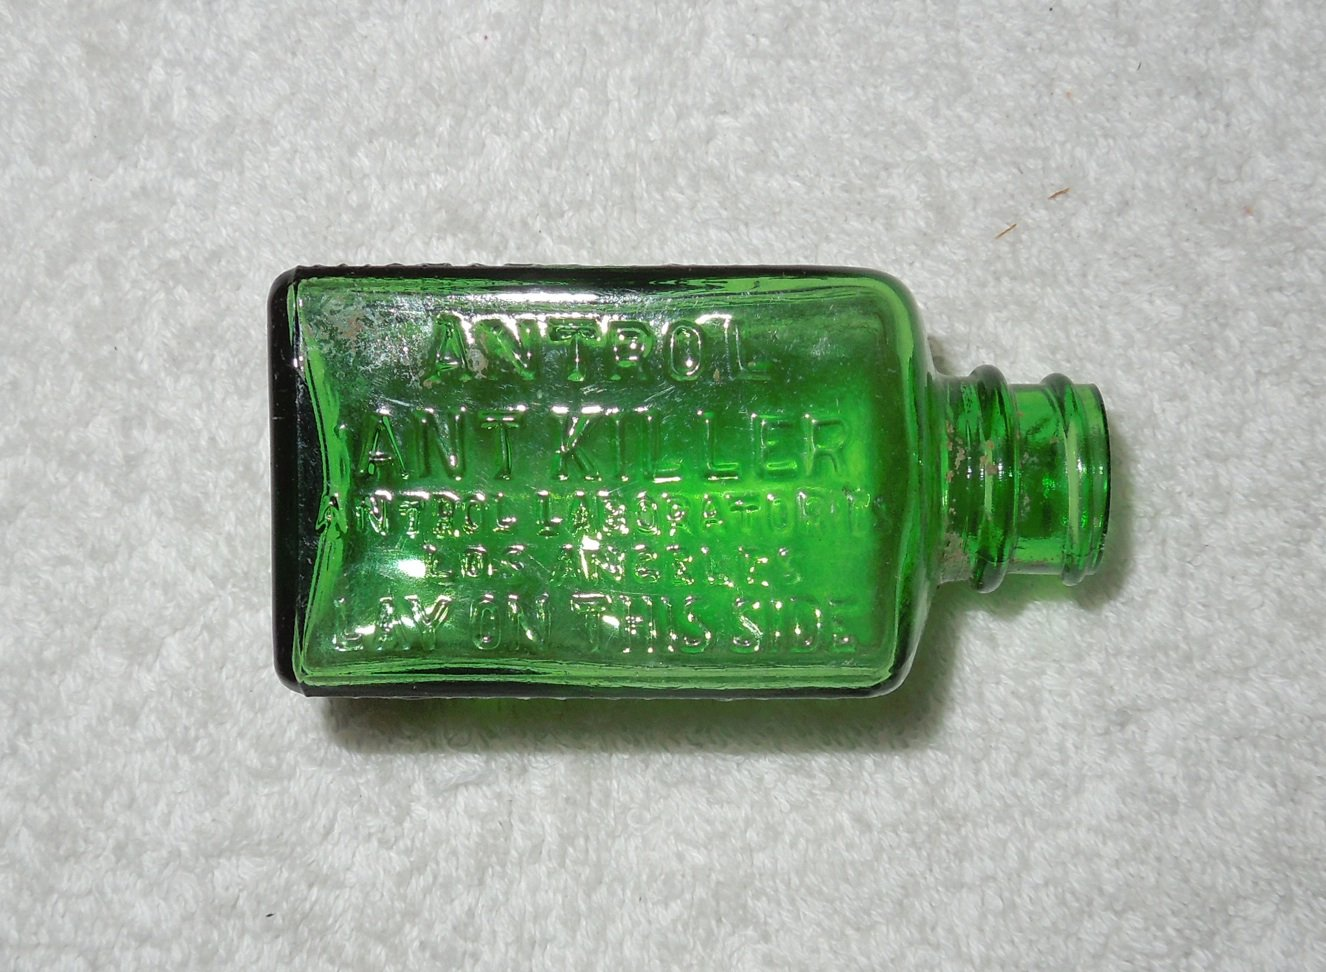 Antrol - Ant Killer - Empty Green Glass Bottle - Lid Missing - Needs To Be Cleaned